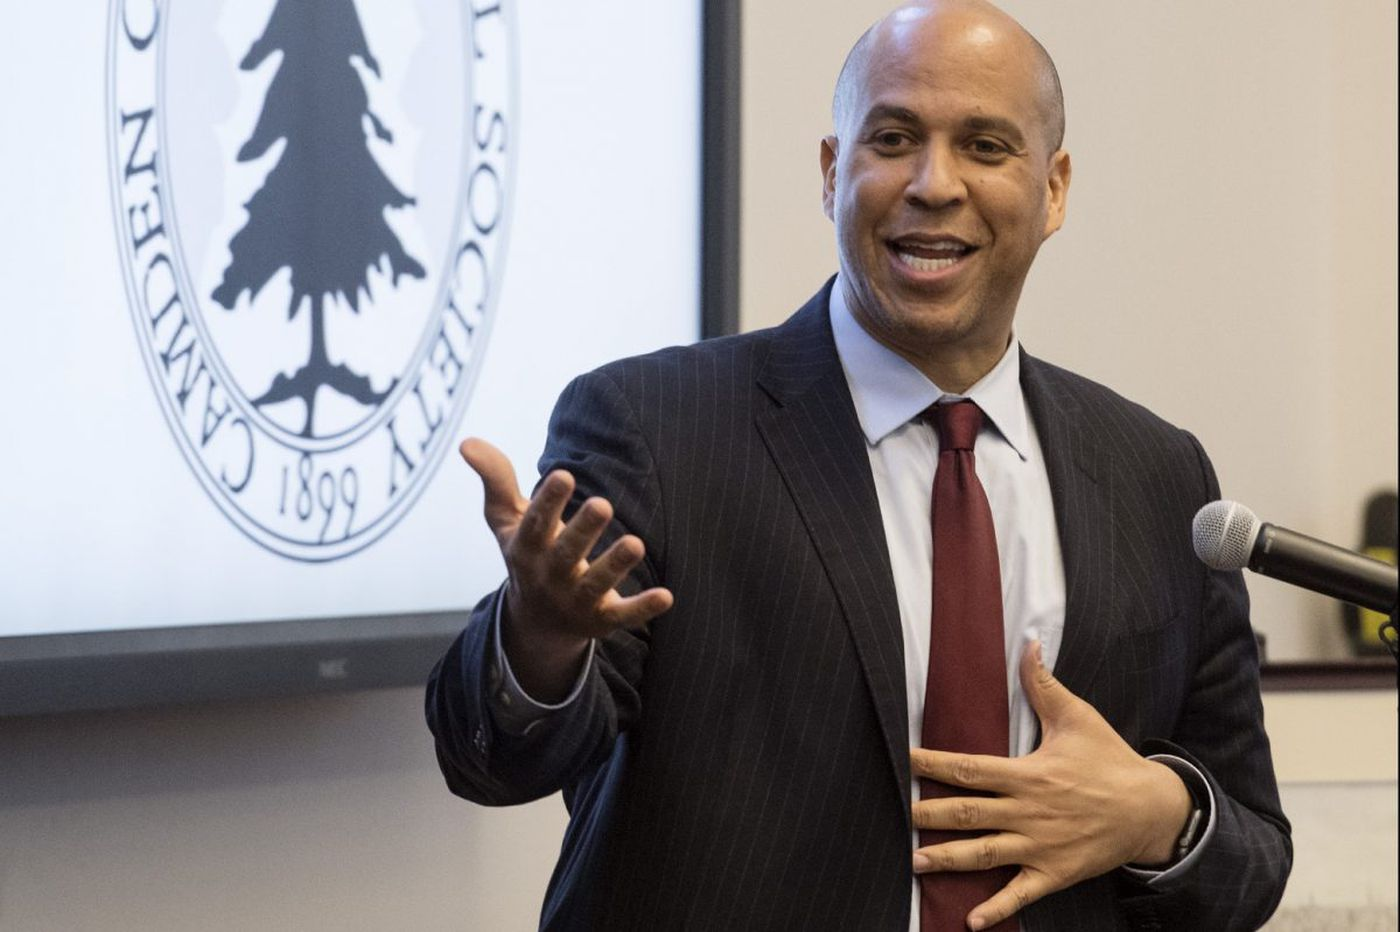 Cory Booker expected to campaign for Doug Jones in Alabama Senate race